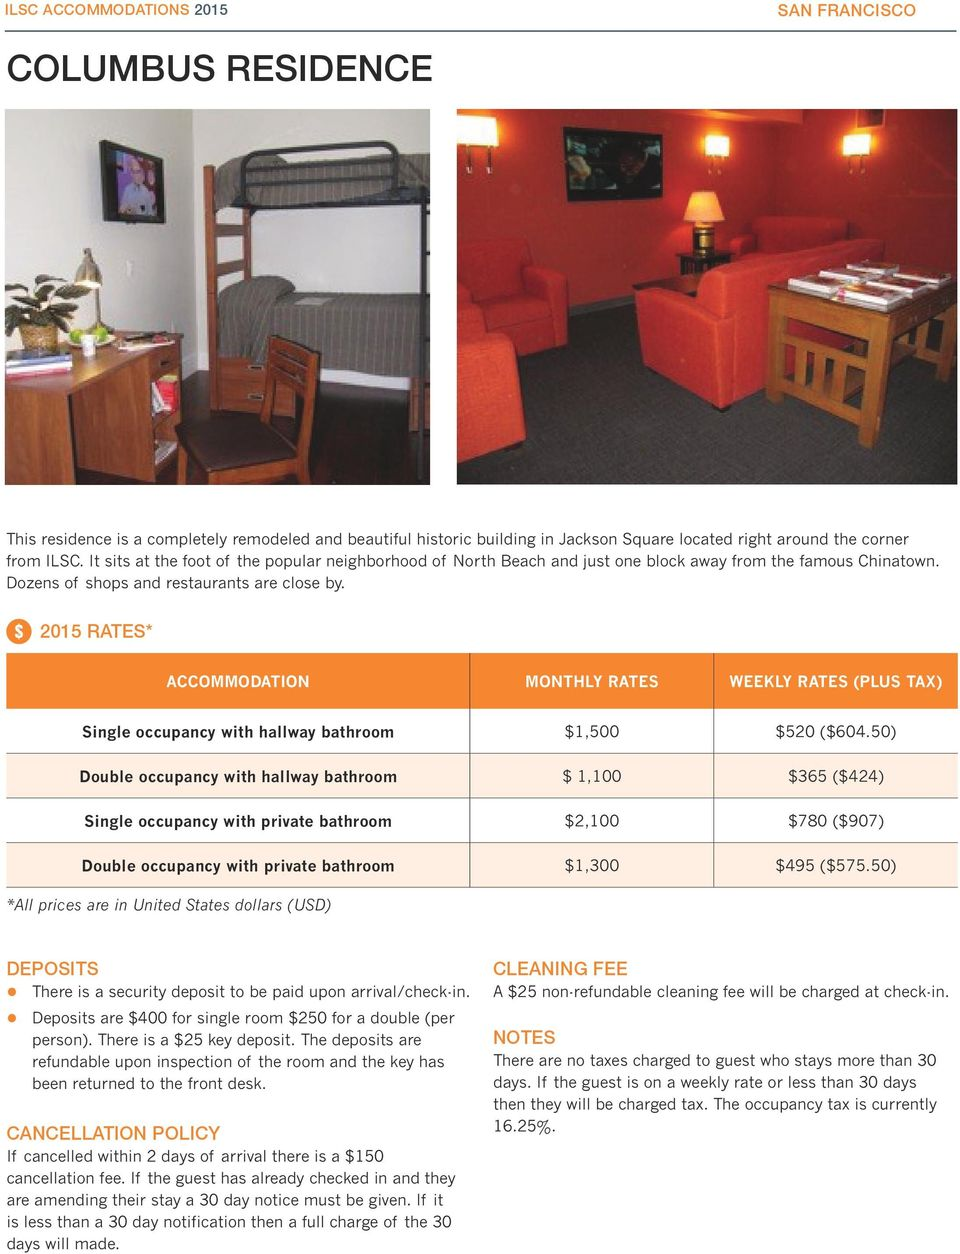 ACCOMMODATION MONTHLY RATES WEEKLY RATES (PLUS TAX) Single occupancy with hallway bathroom $1,500 $520 ($604.